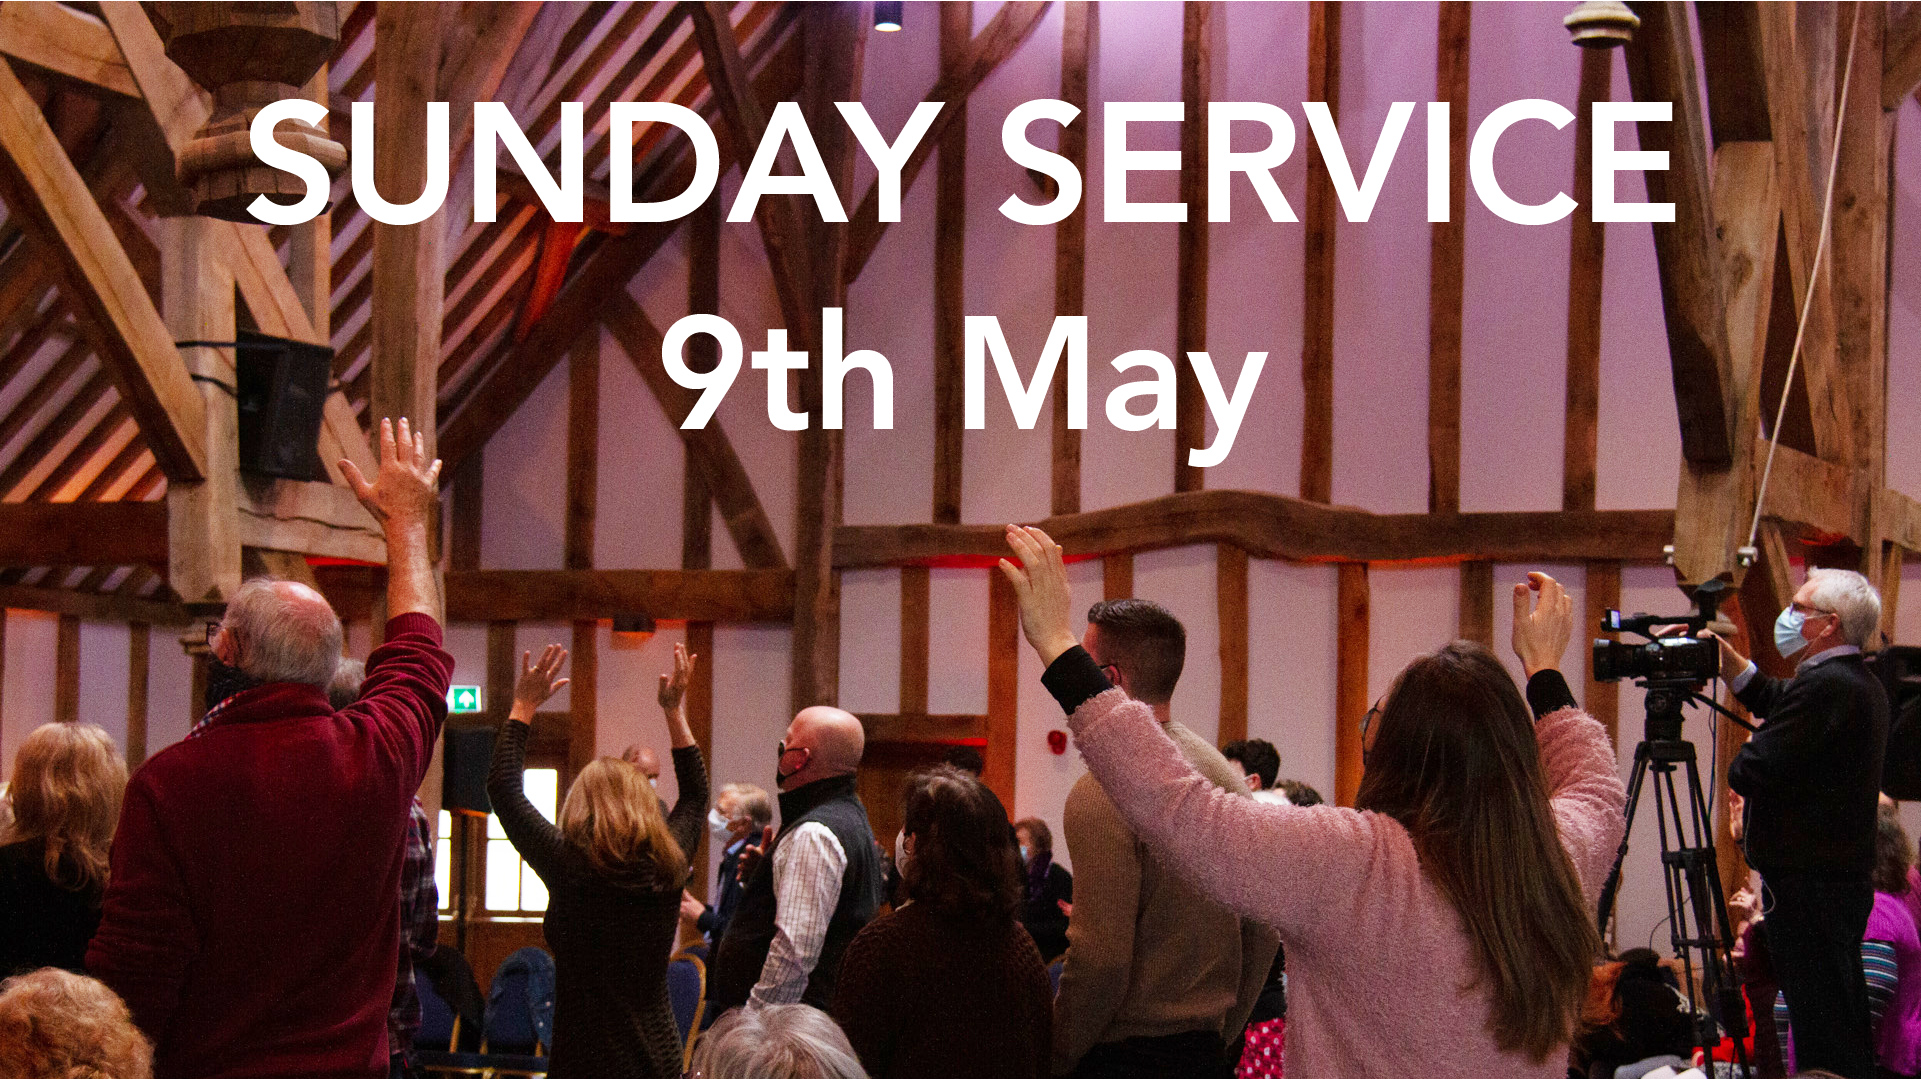 9th May Sunday service